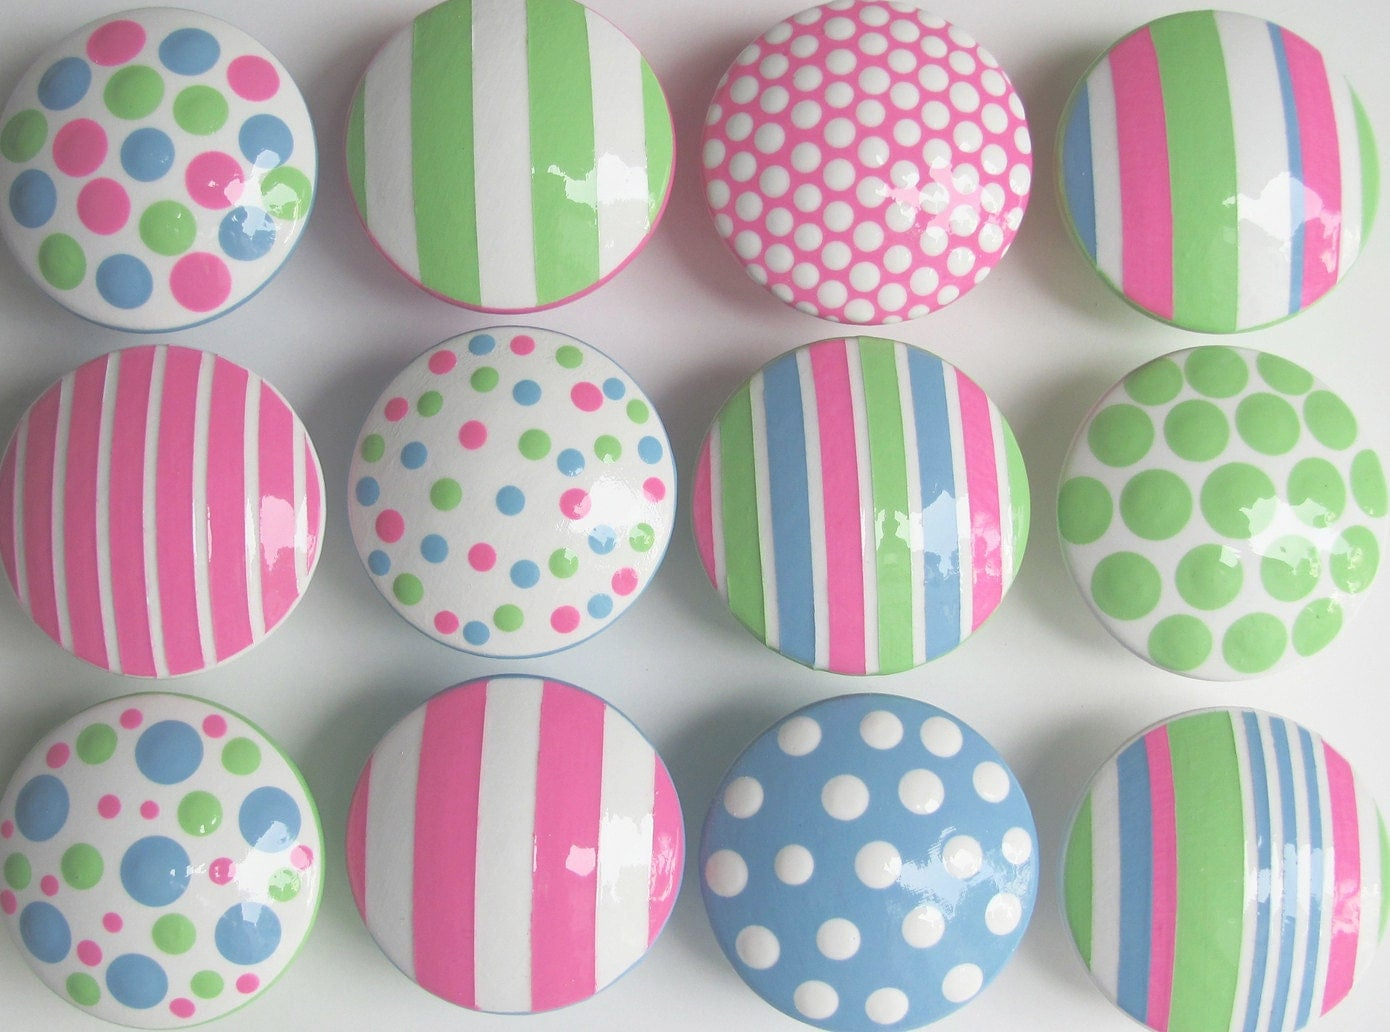 "Hand Painted Children's Knobs- Pink, Blue, Lime Green Polka Dots and Stripes Combination Knobs 1 1/2"" Wooden Drawer Knobs- SET OF 12"